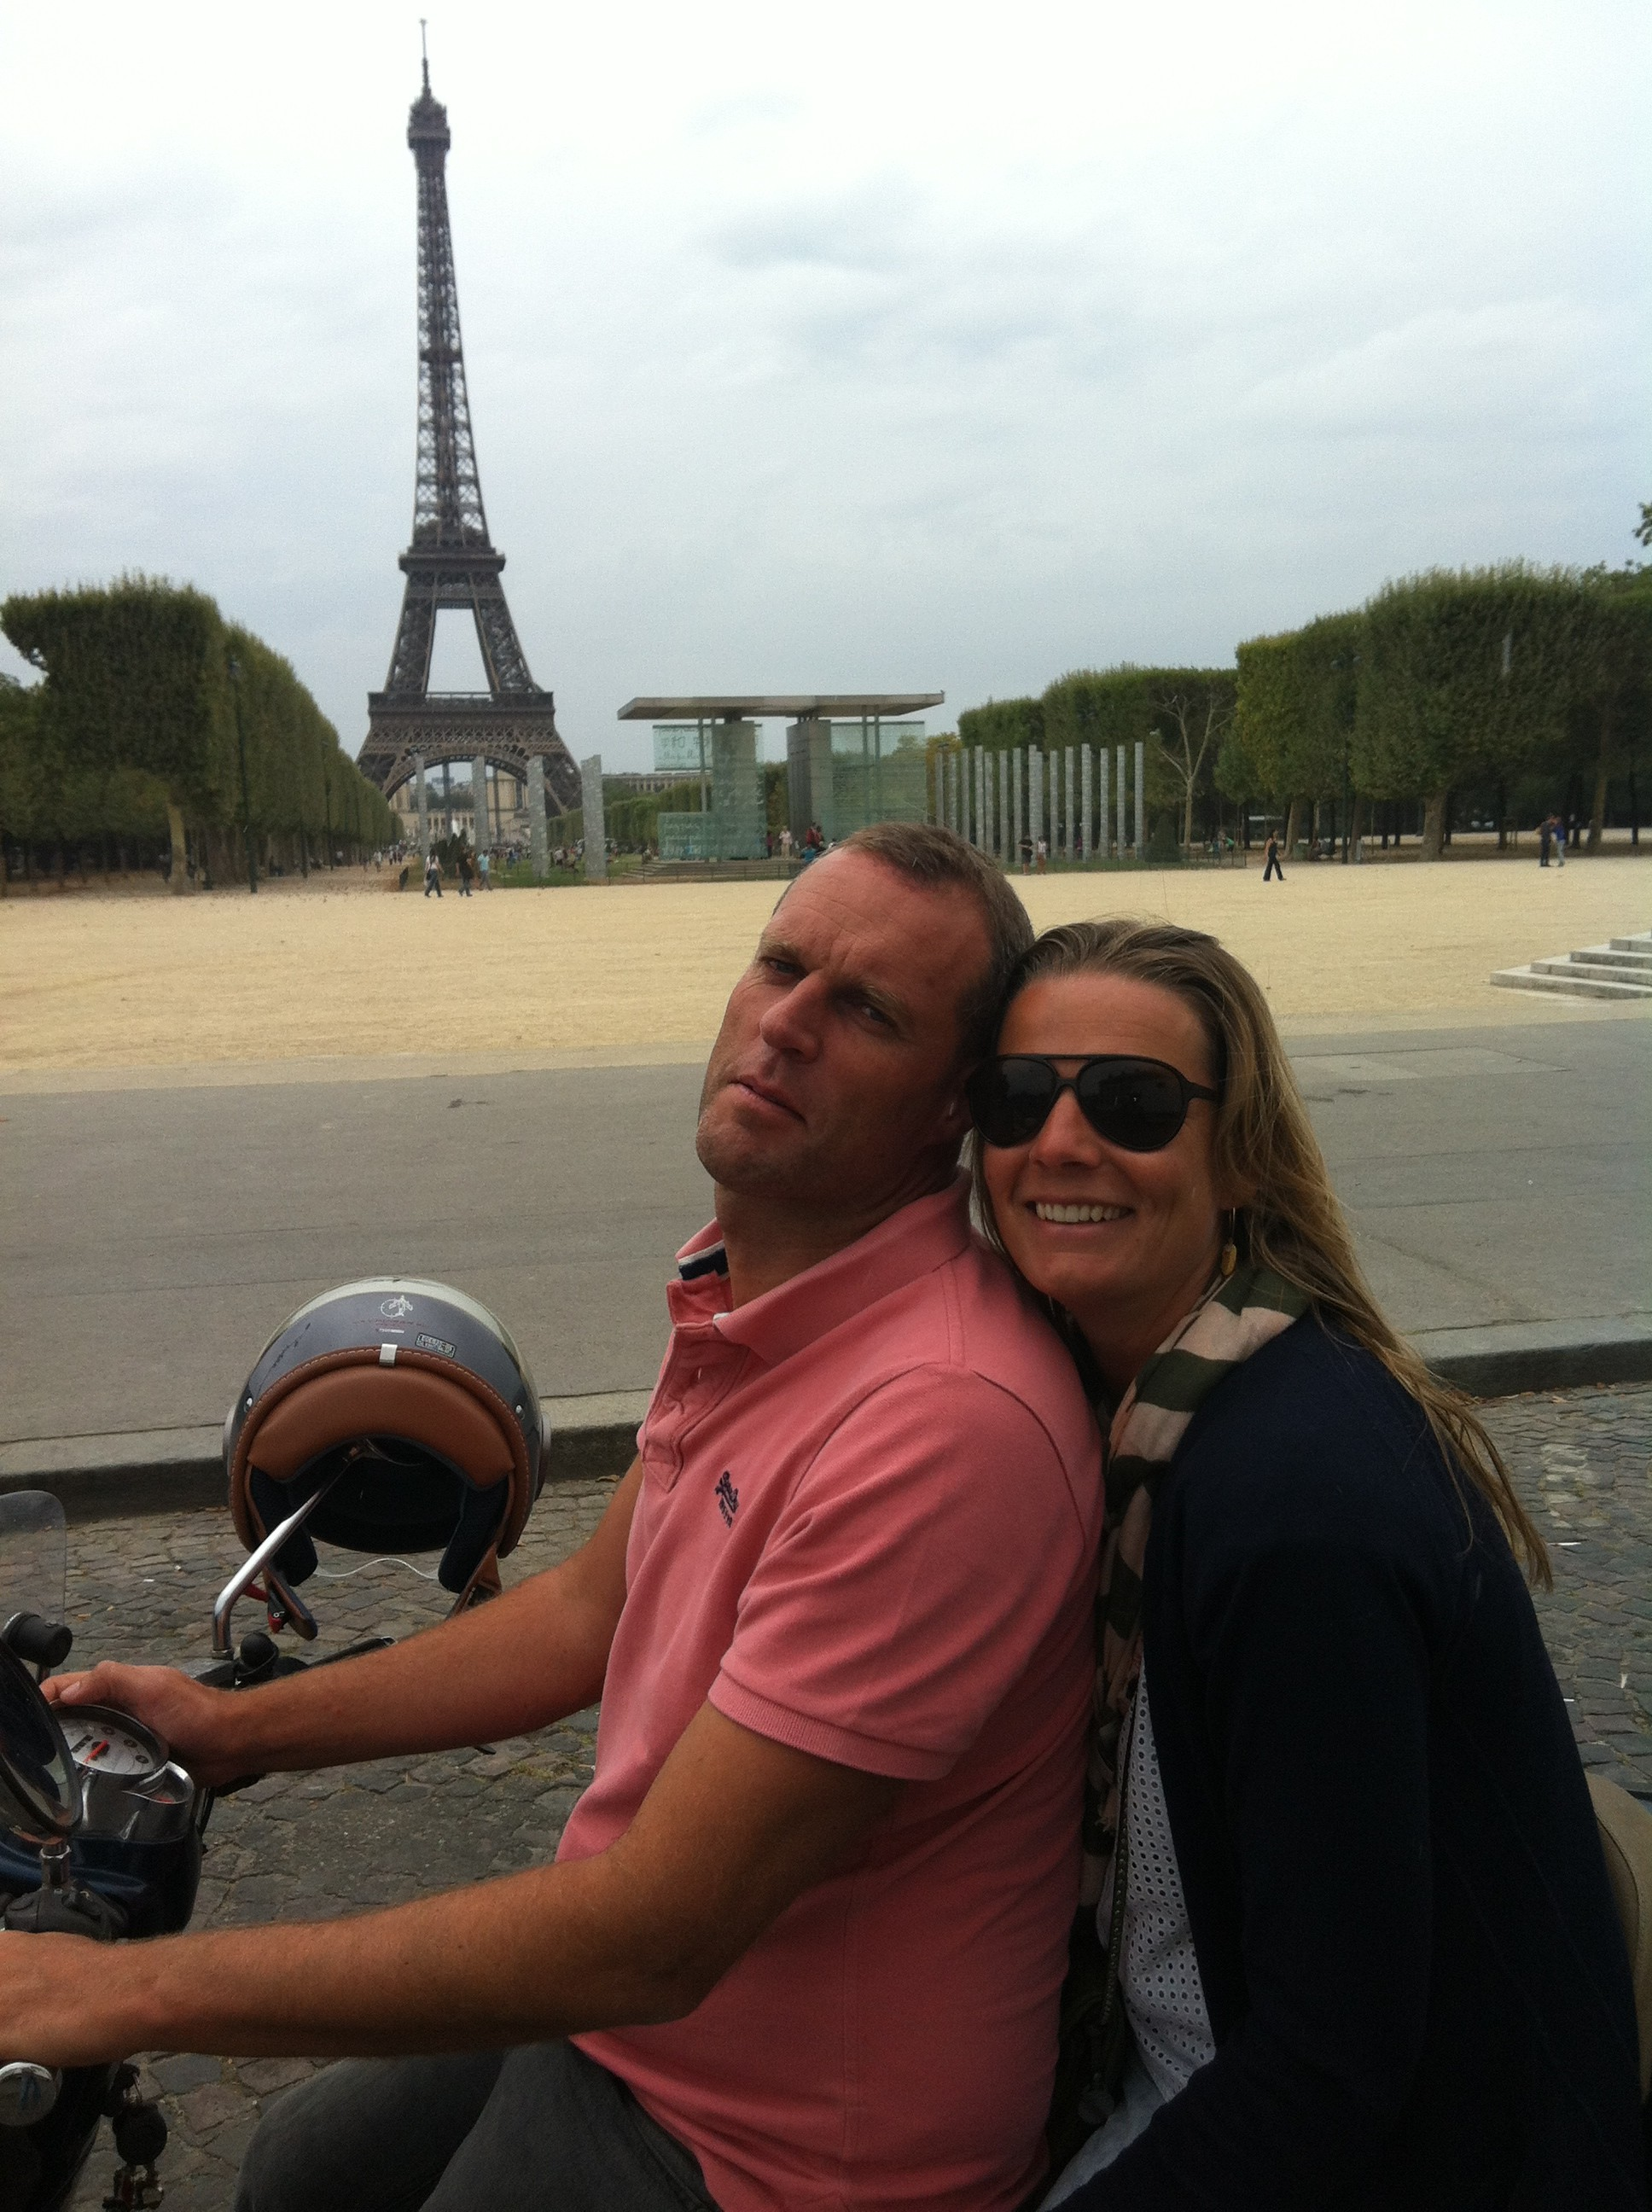 Mieke and Philip at Eiffel Tower and Champs de Mars by scooter.